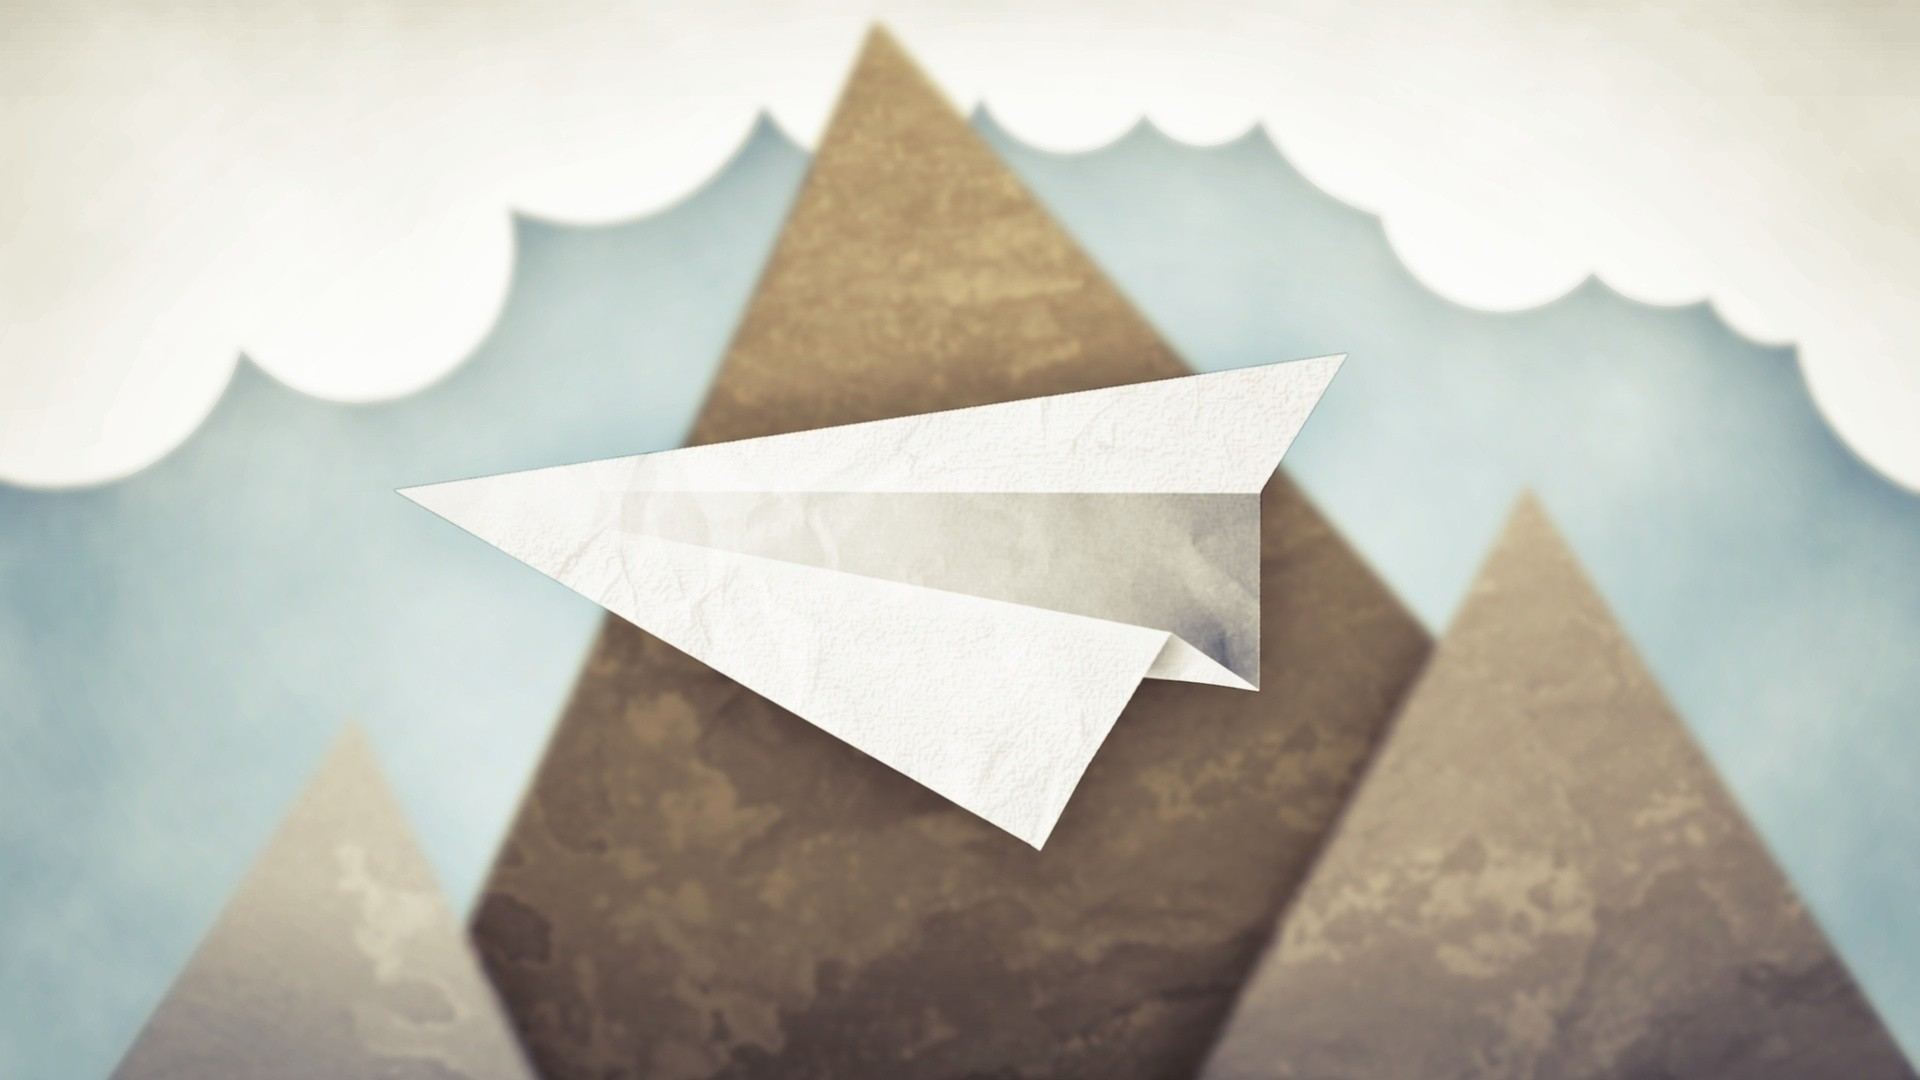 Paper Airplane hd image